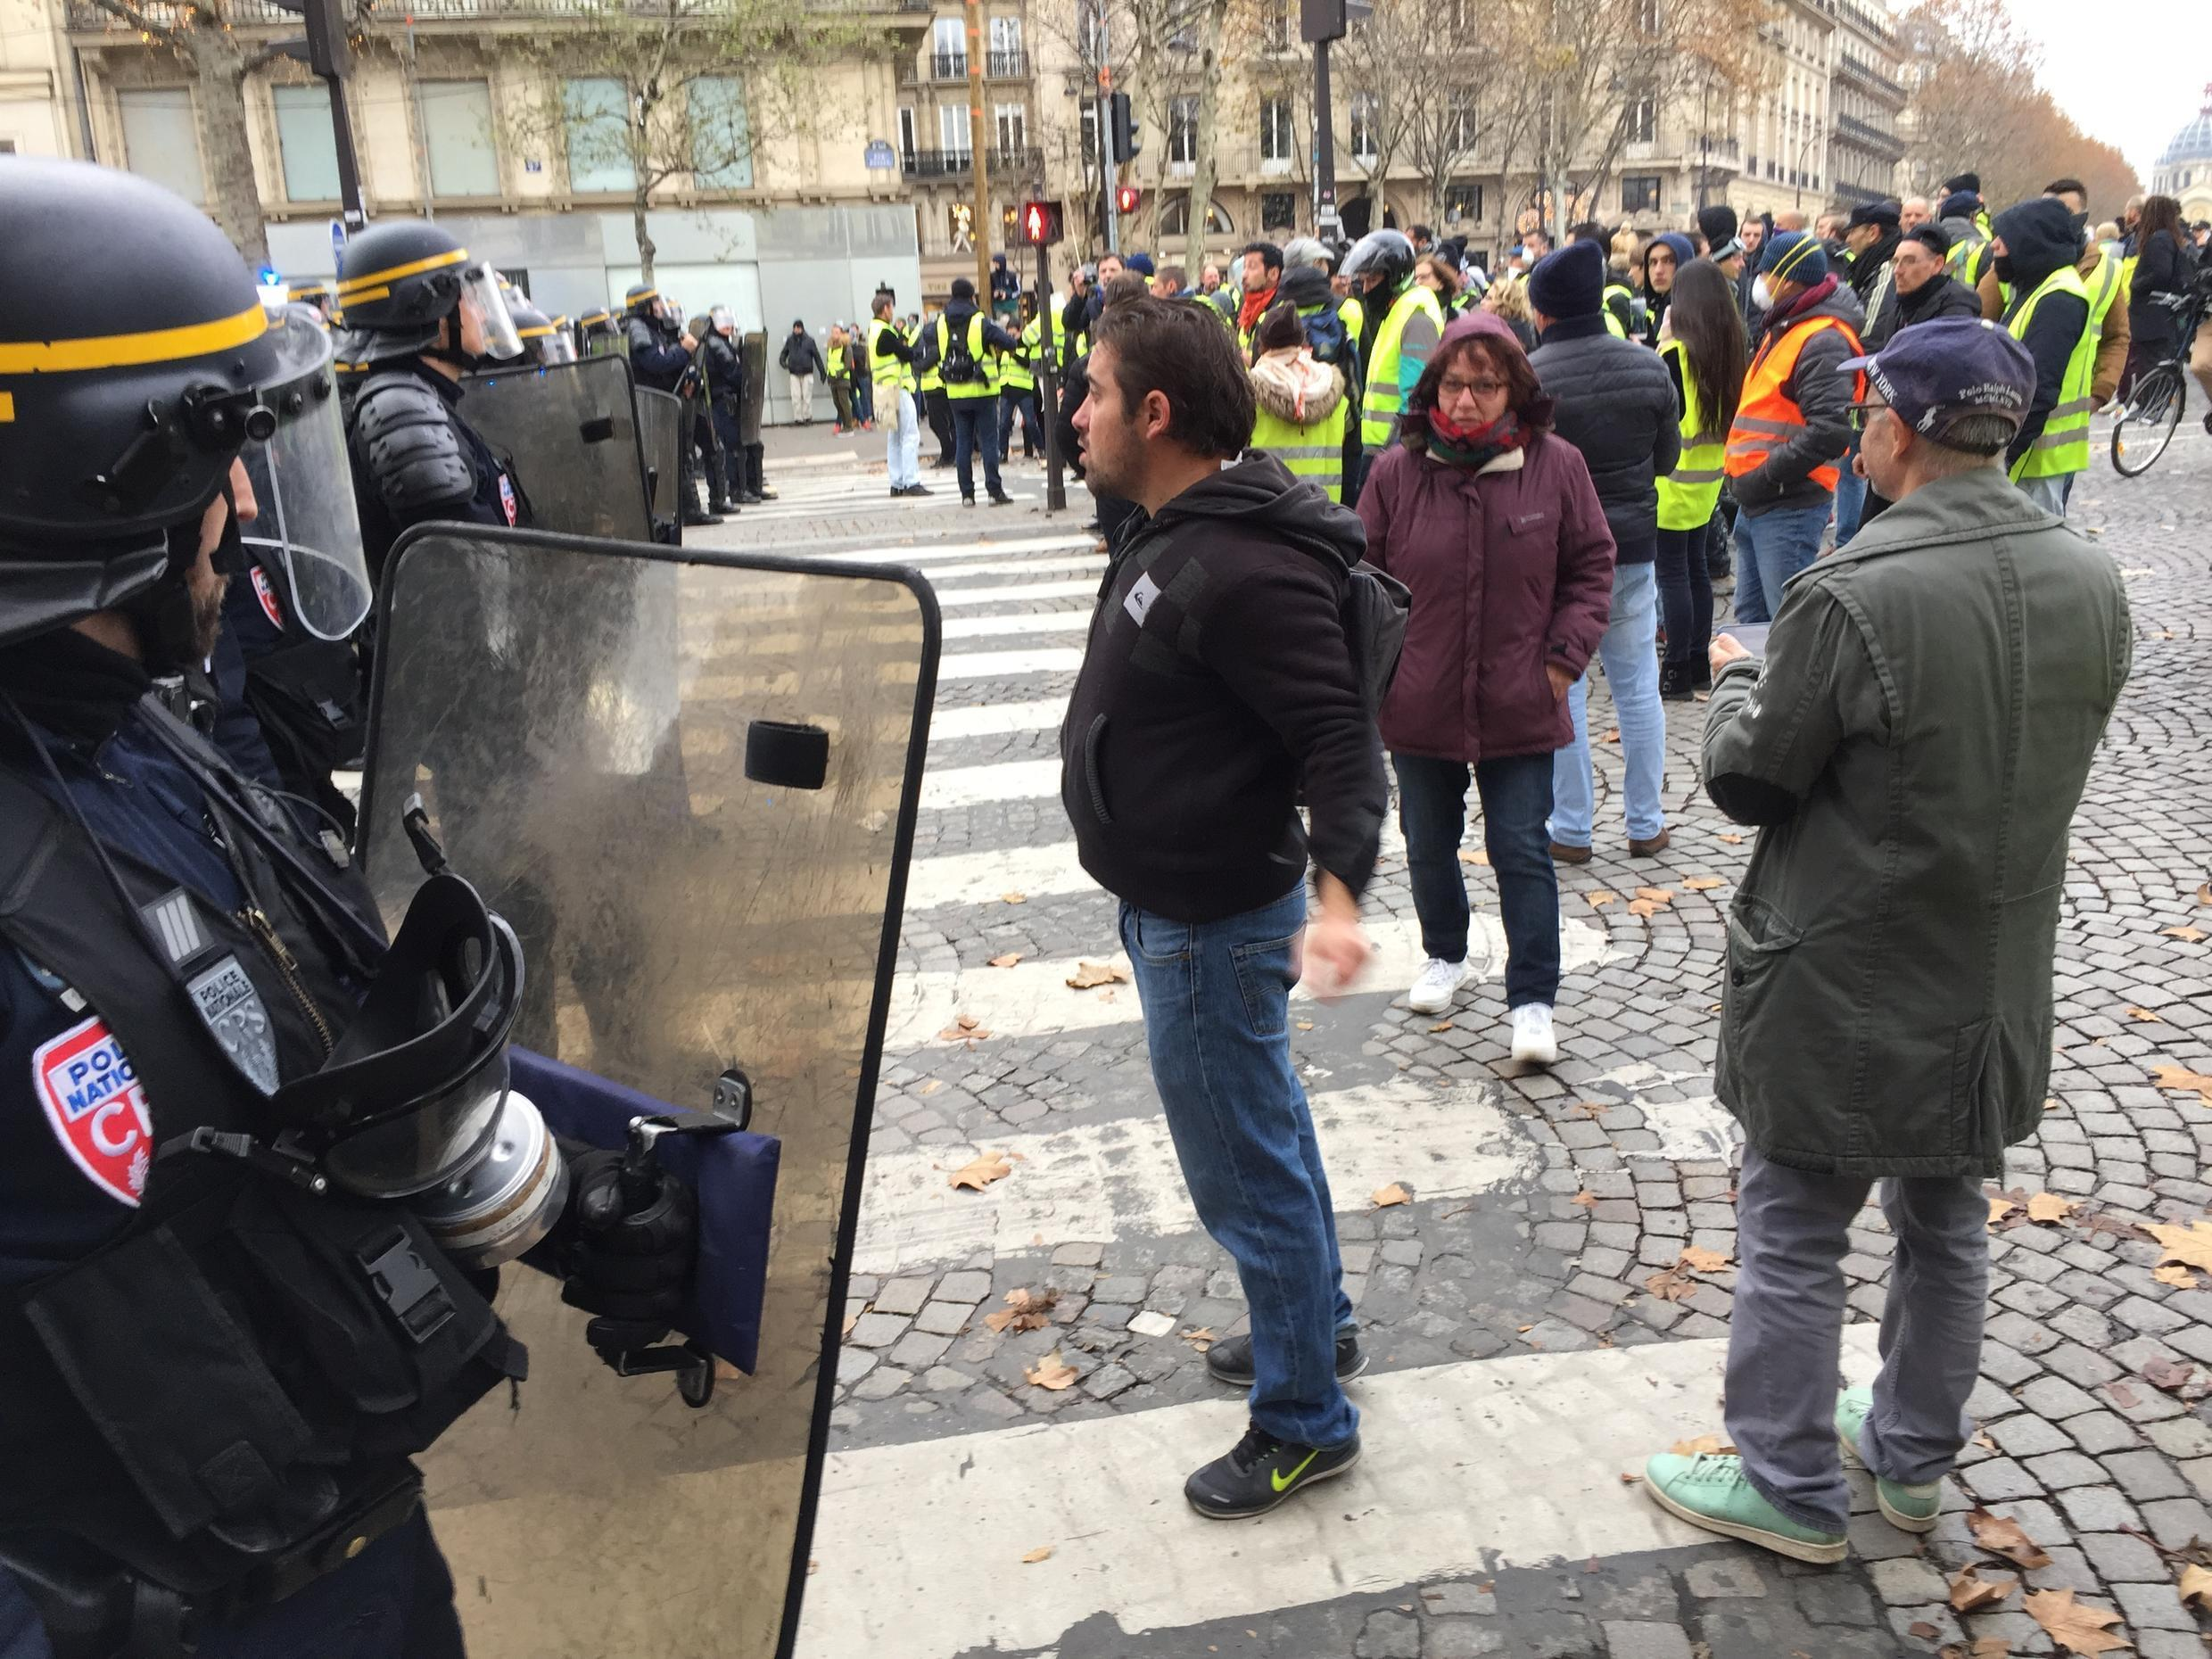 A protester confronts riot police in Paris on Saturday